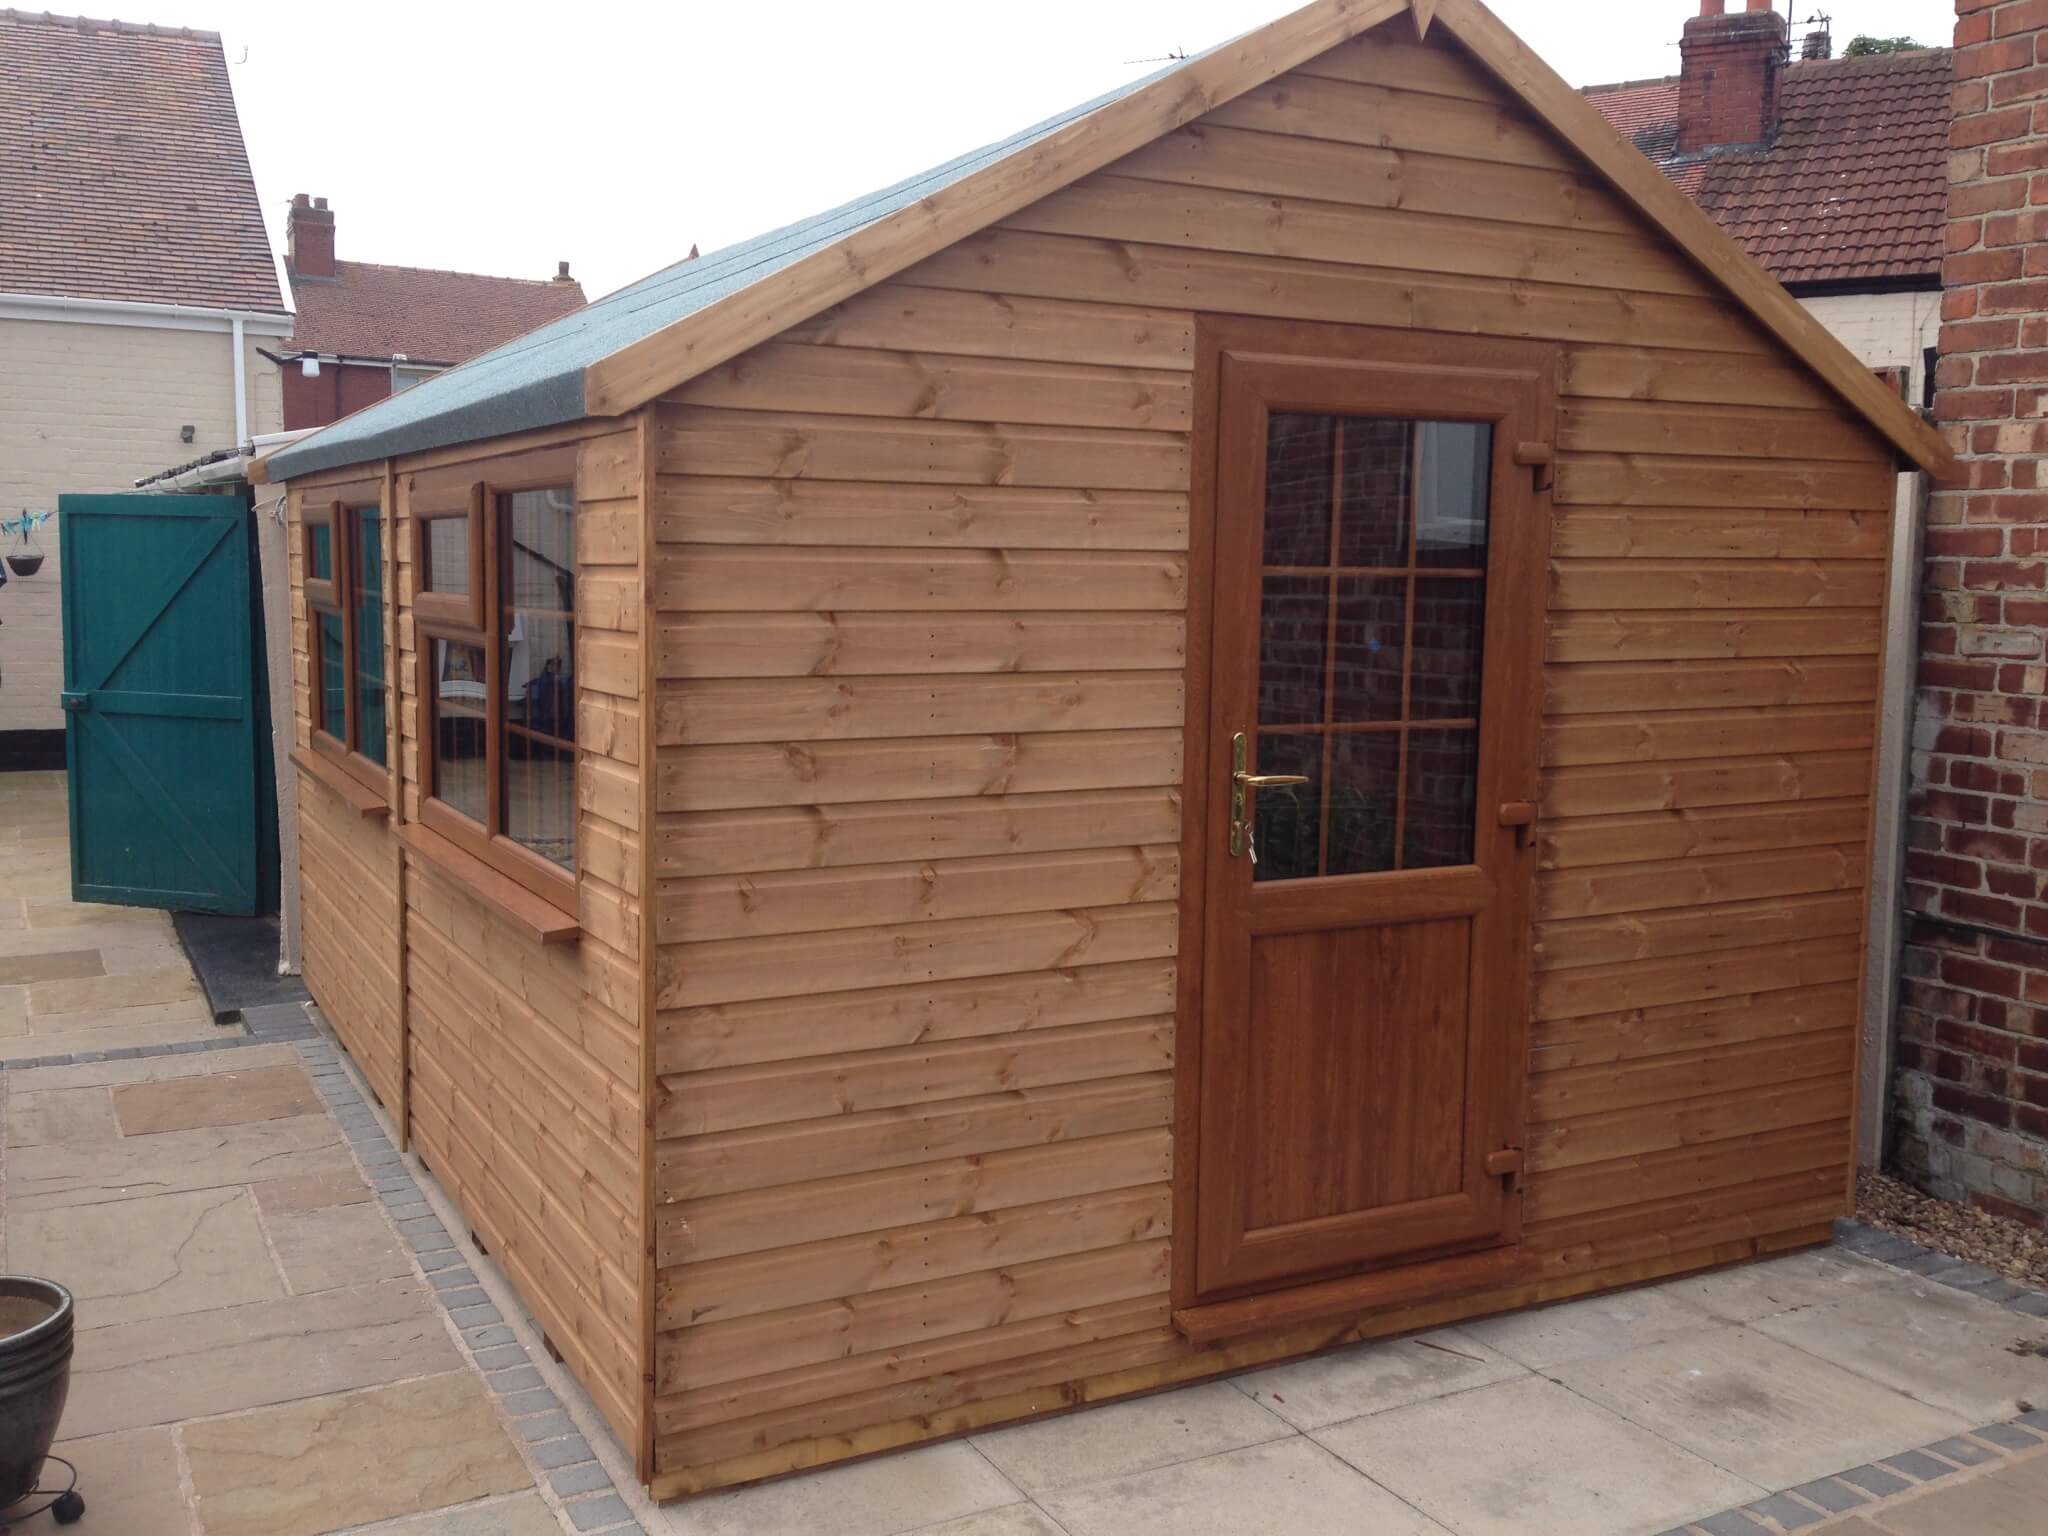 Timber garden offices - GSG buildings